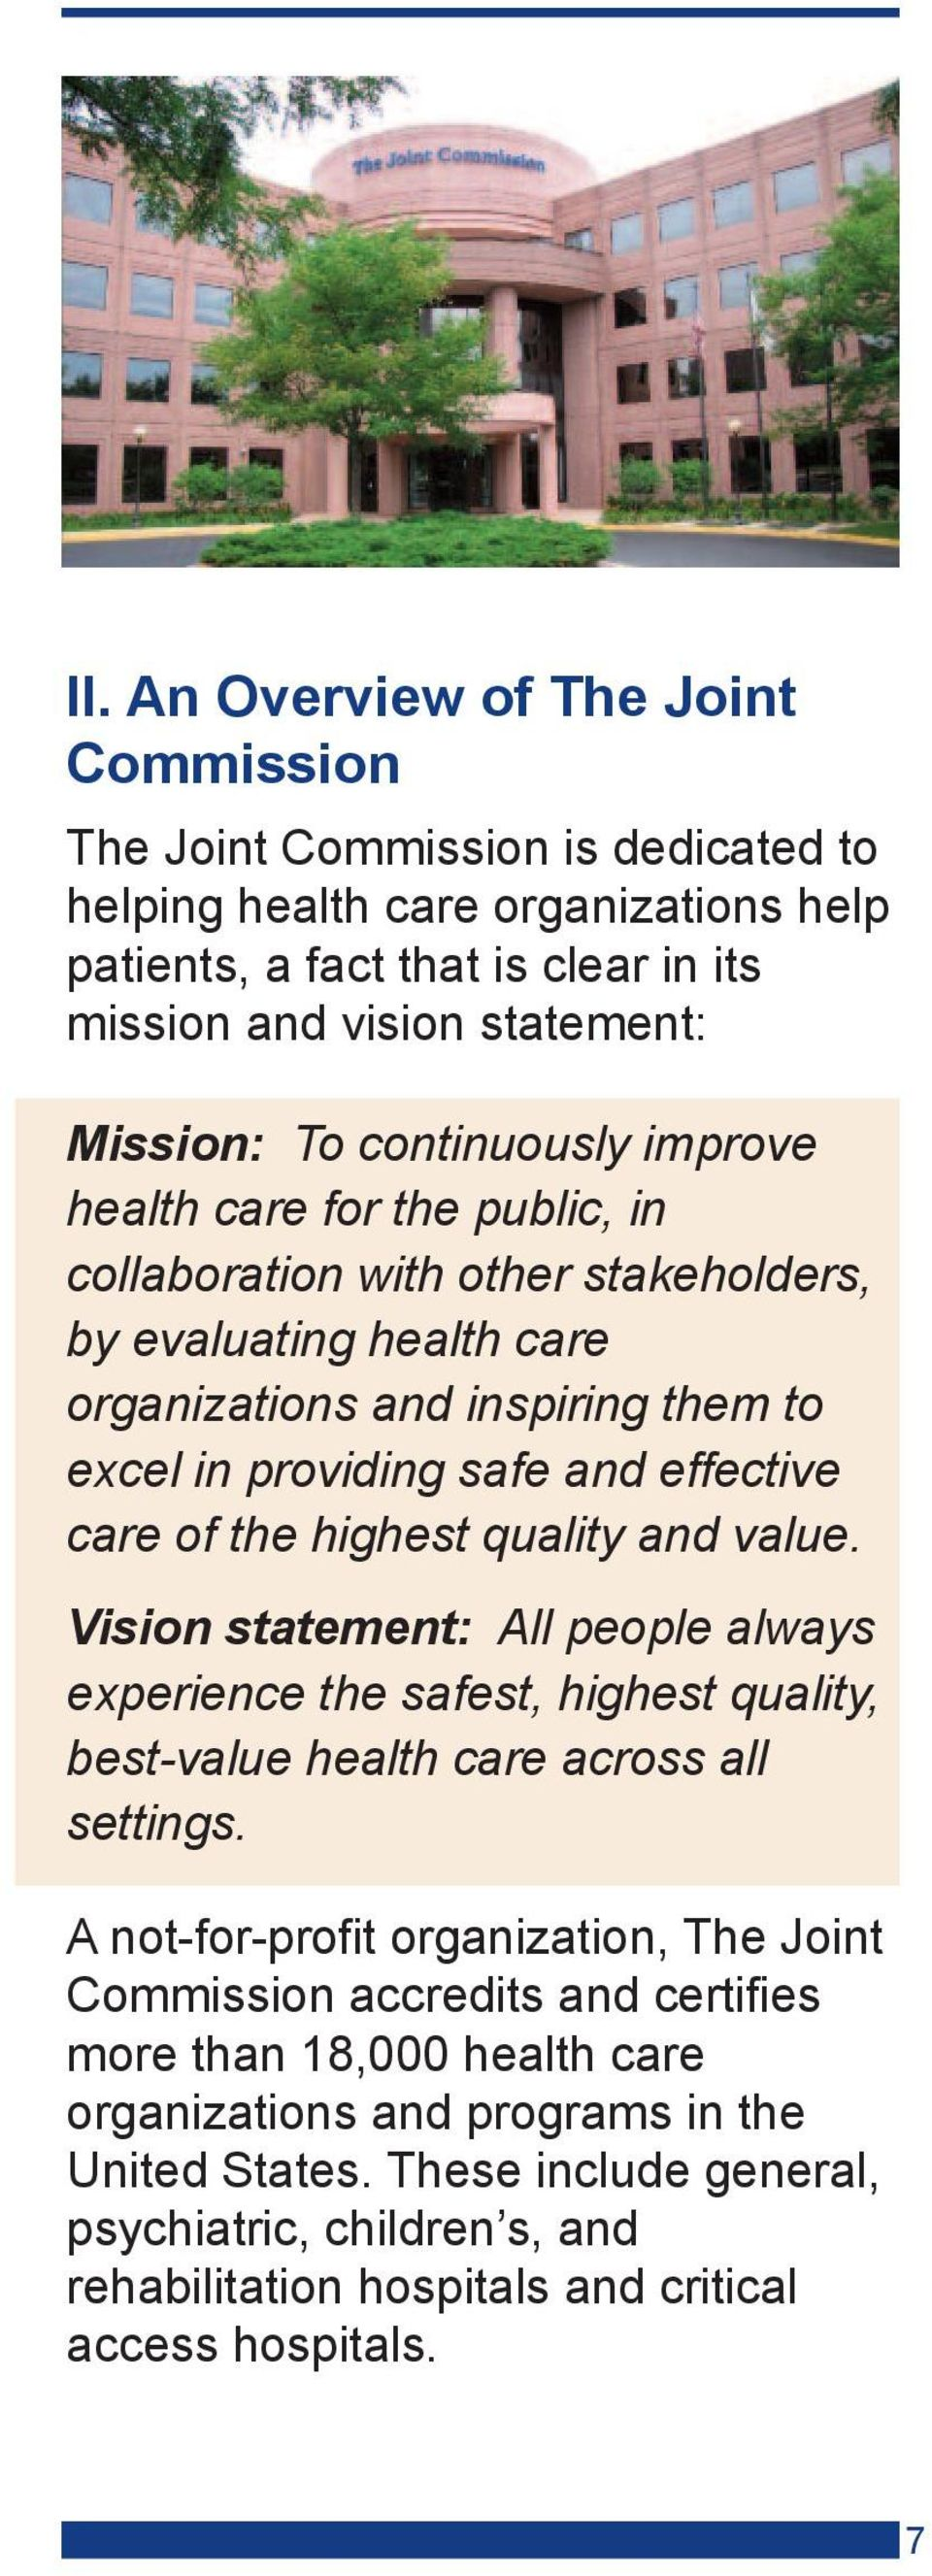 the highest quality and value. Vision statement: All people always experience the safest, highest quality, best-value health care across all settings.